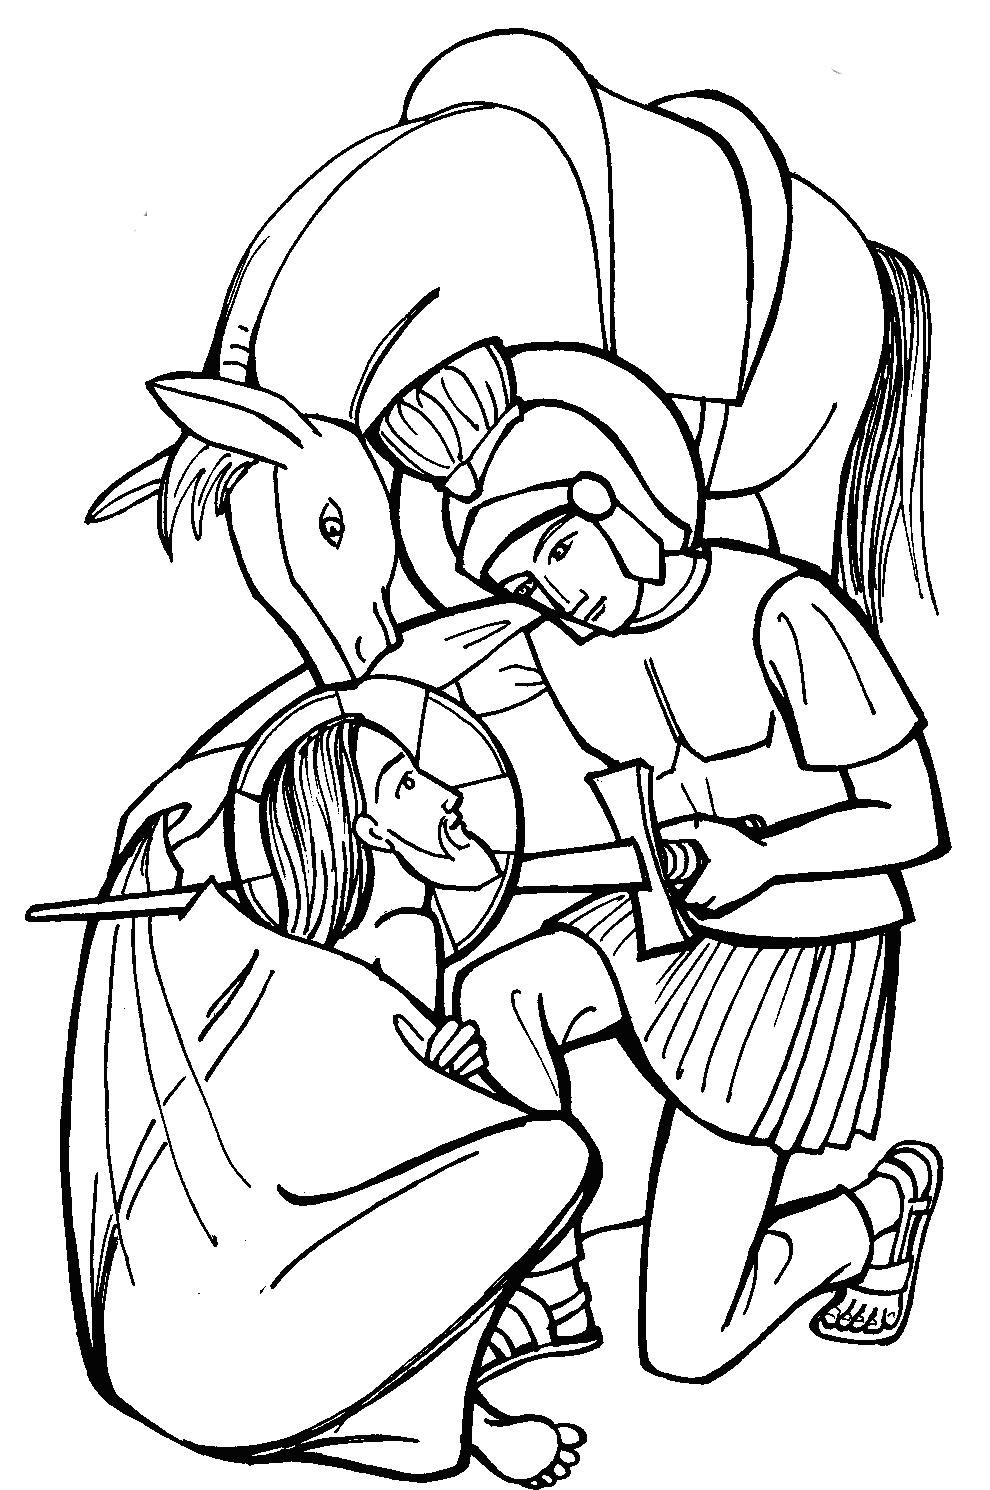 St. Martin of Tours Catholic Coloring Page.Feast day